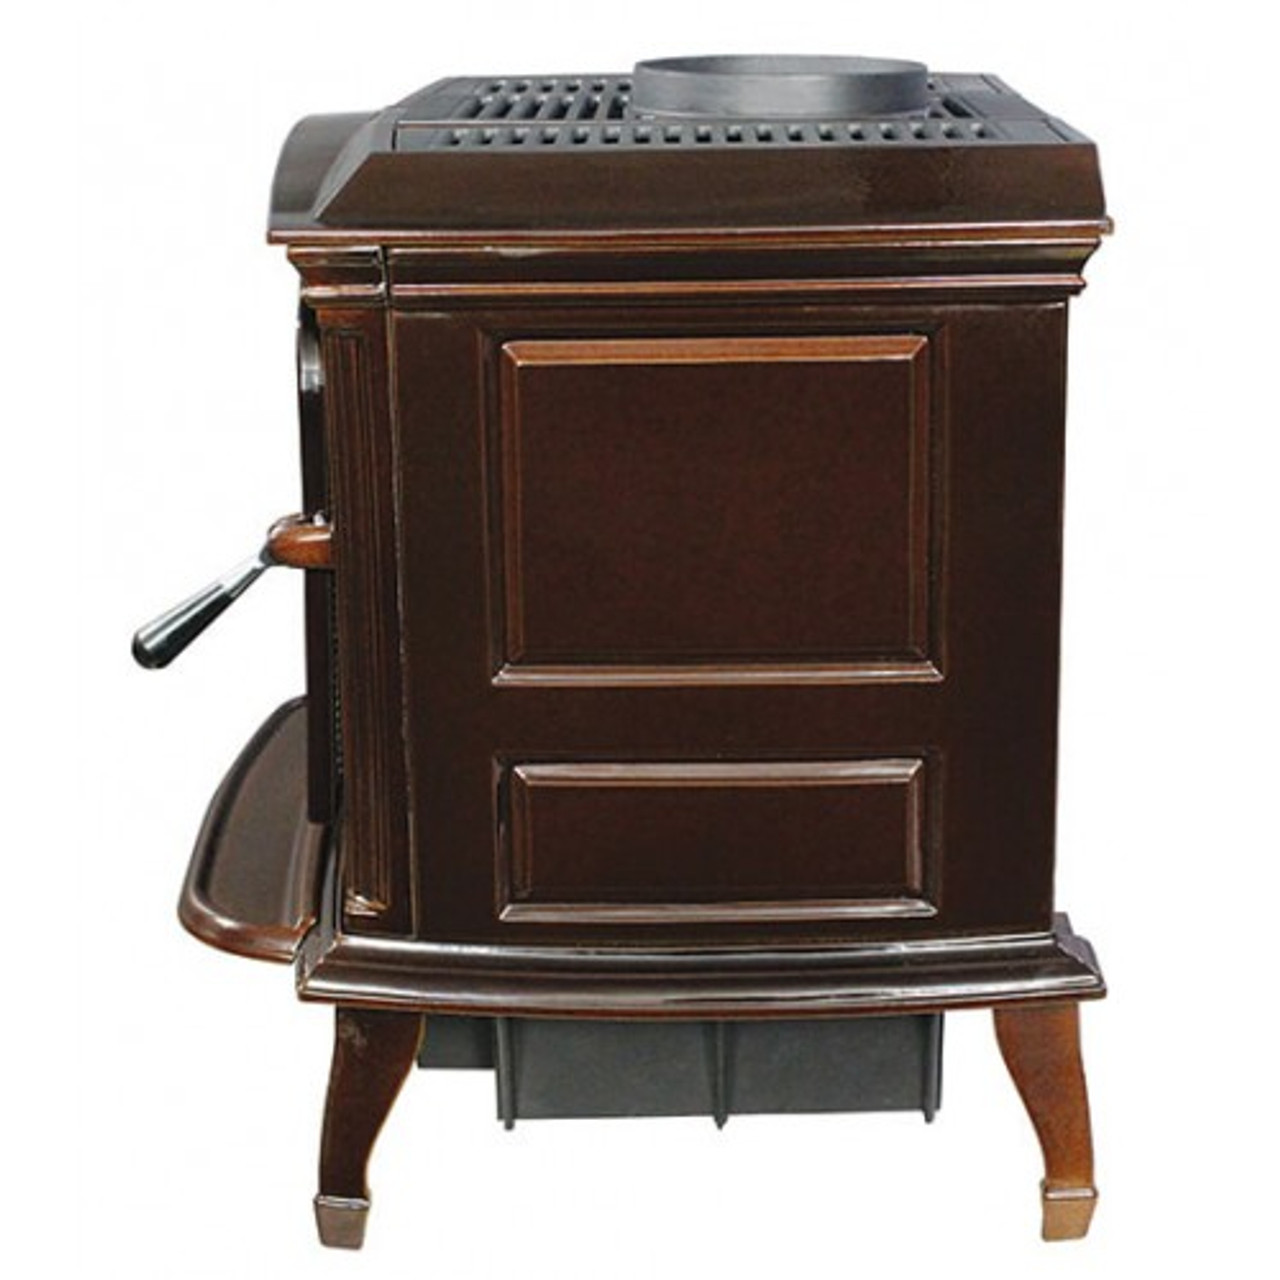 Breckwell SWC21 Enamel Cast Iron Wood Stoves